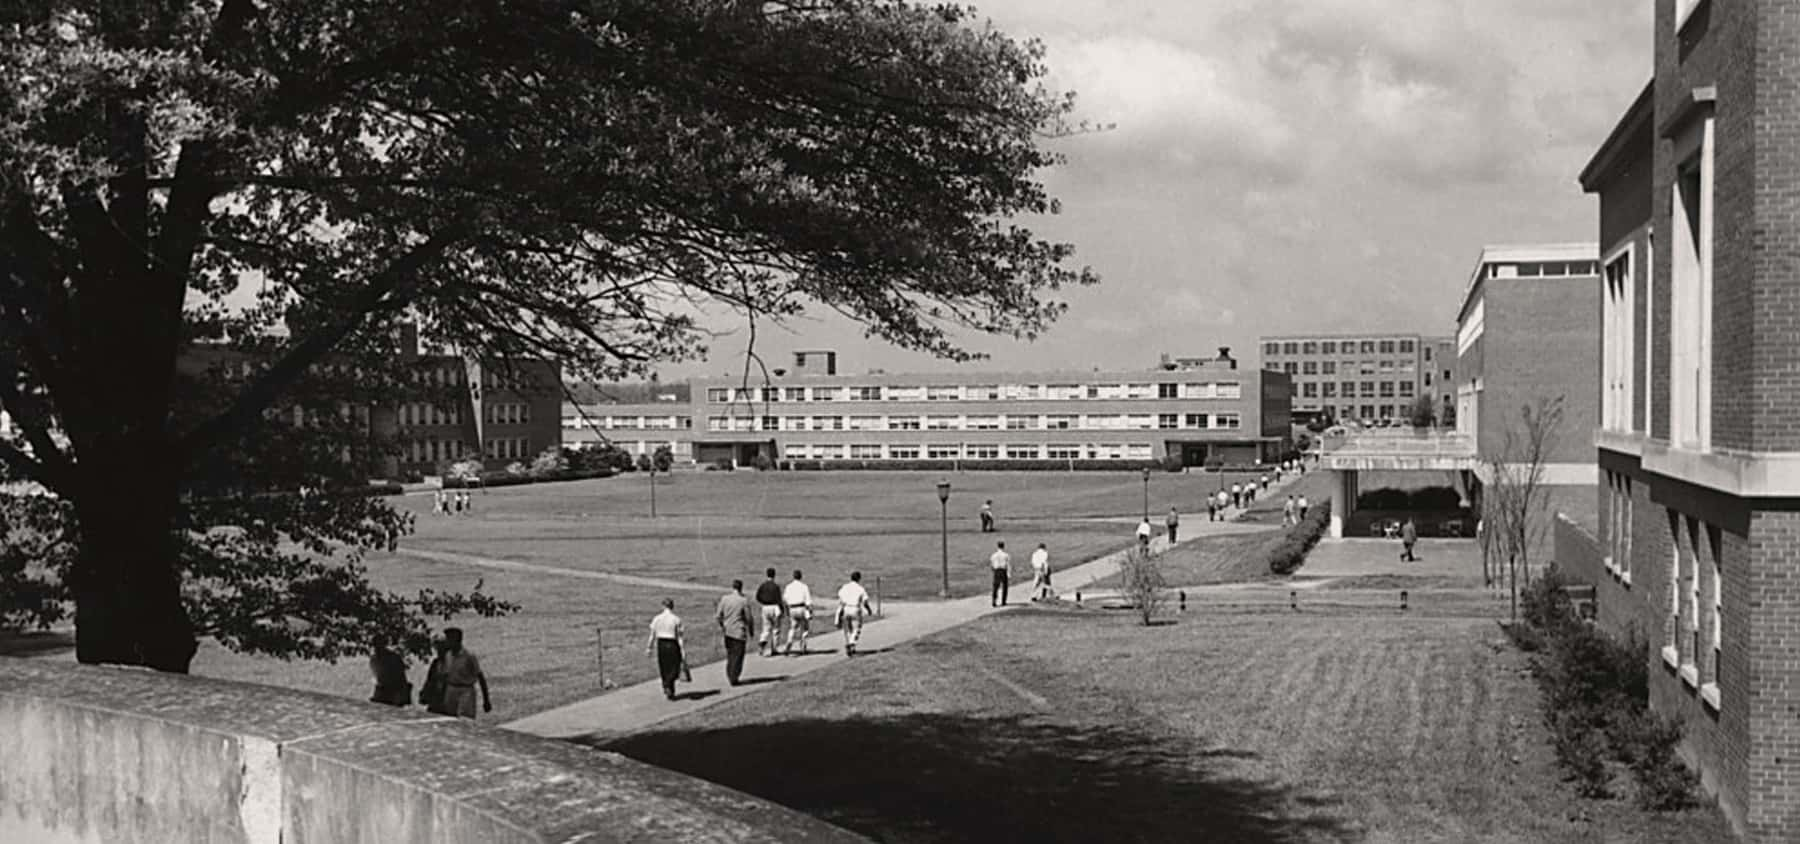 The brickyard area of campus before it was bricks